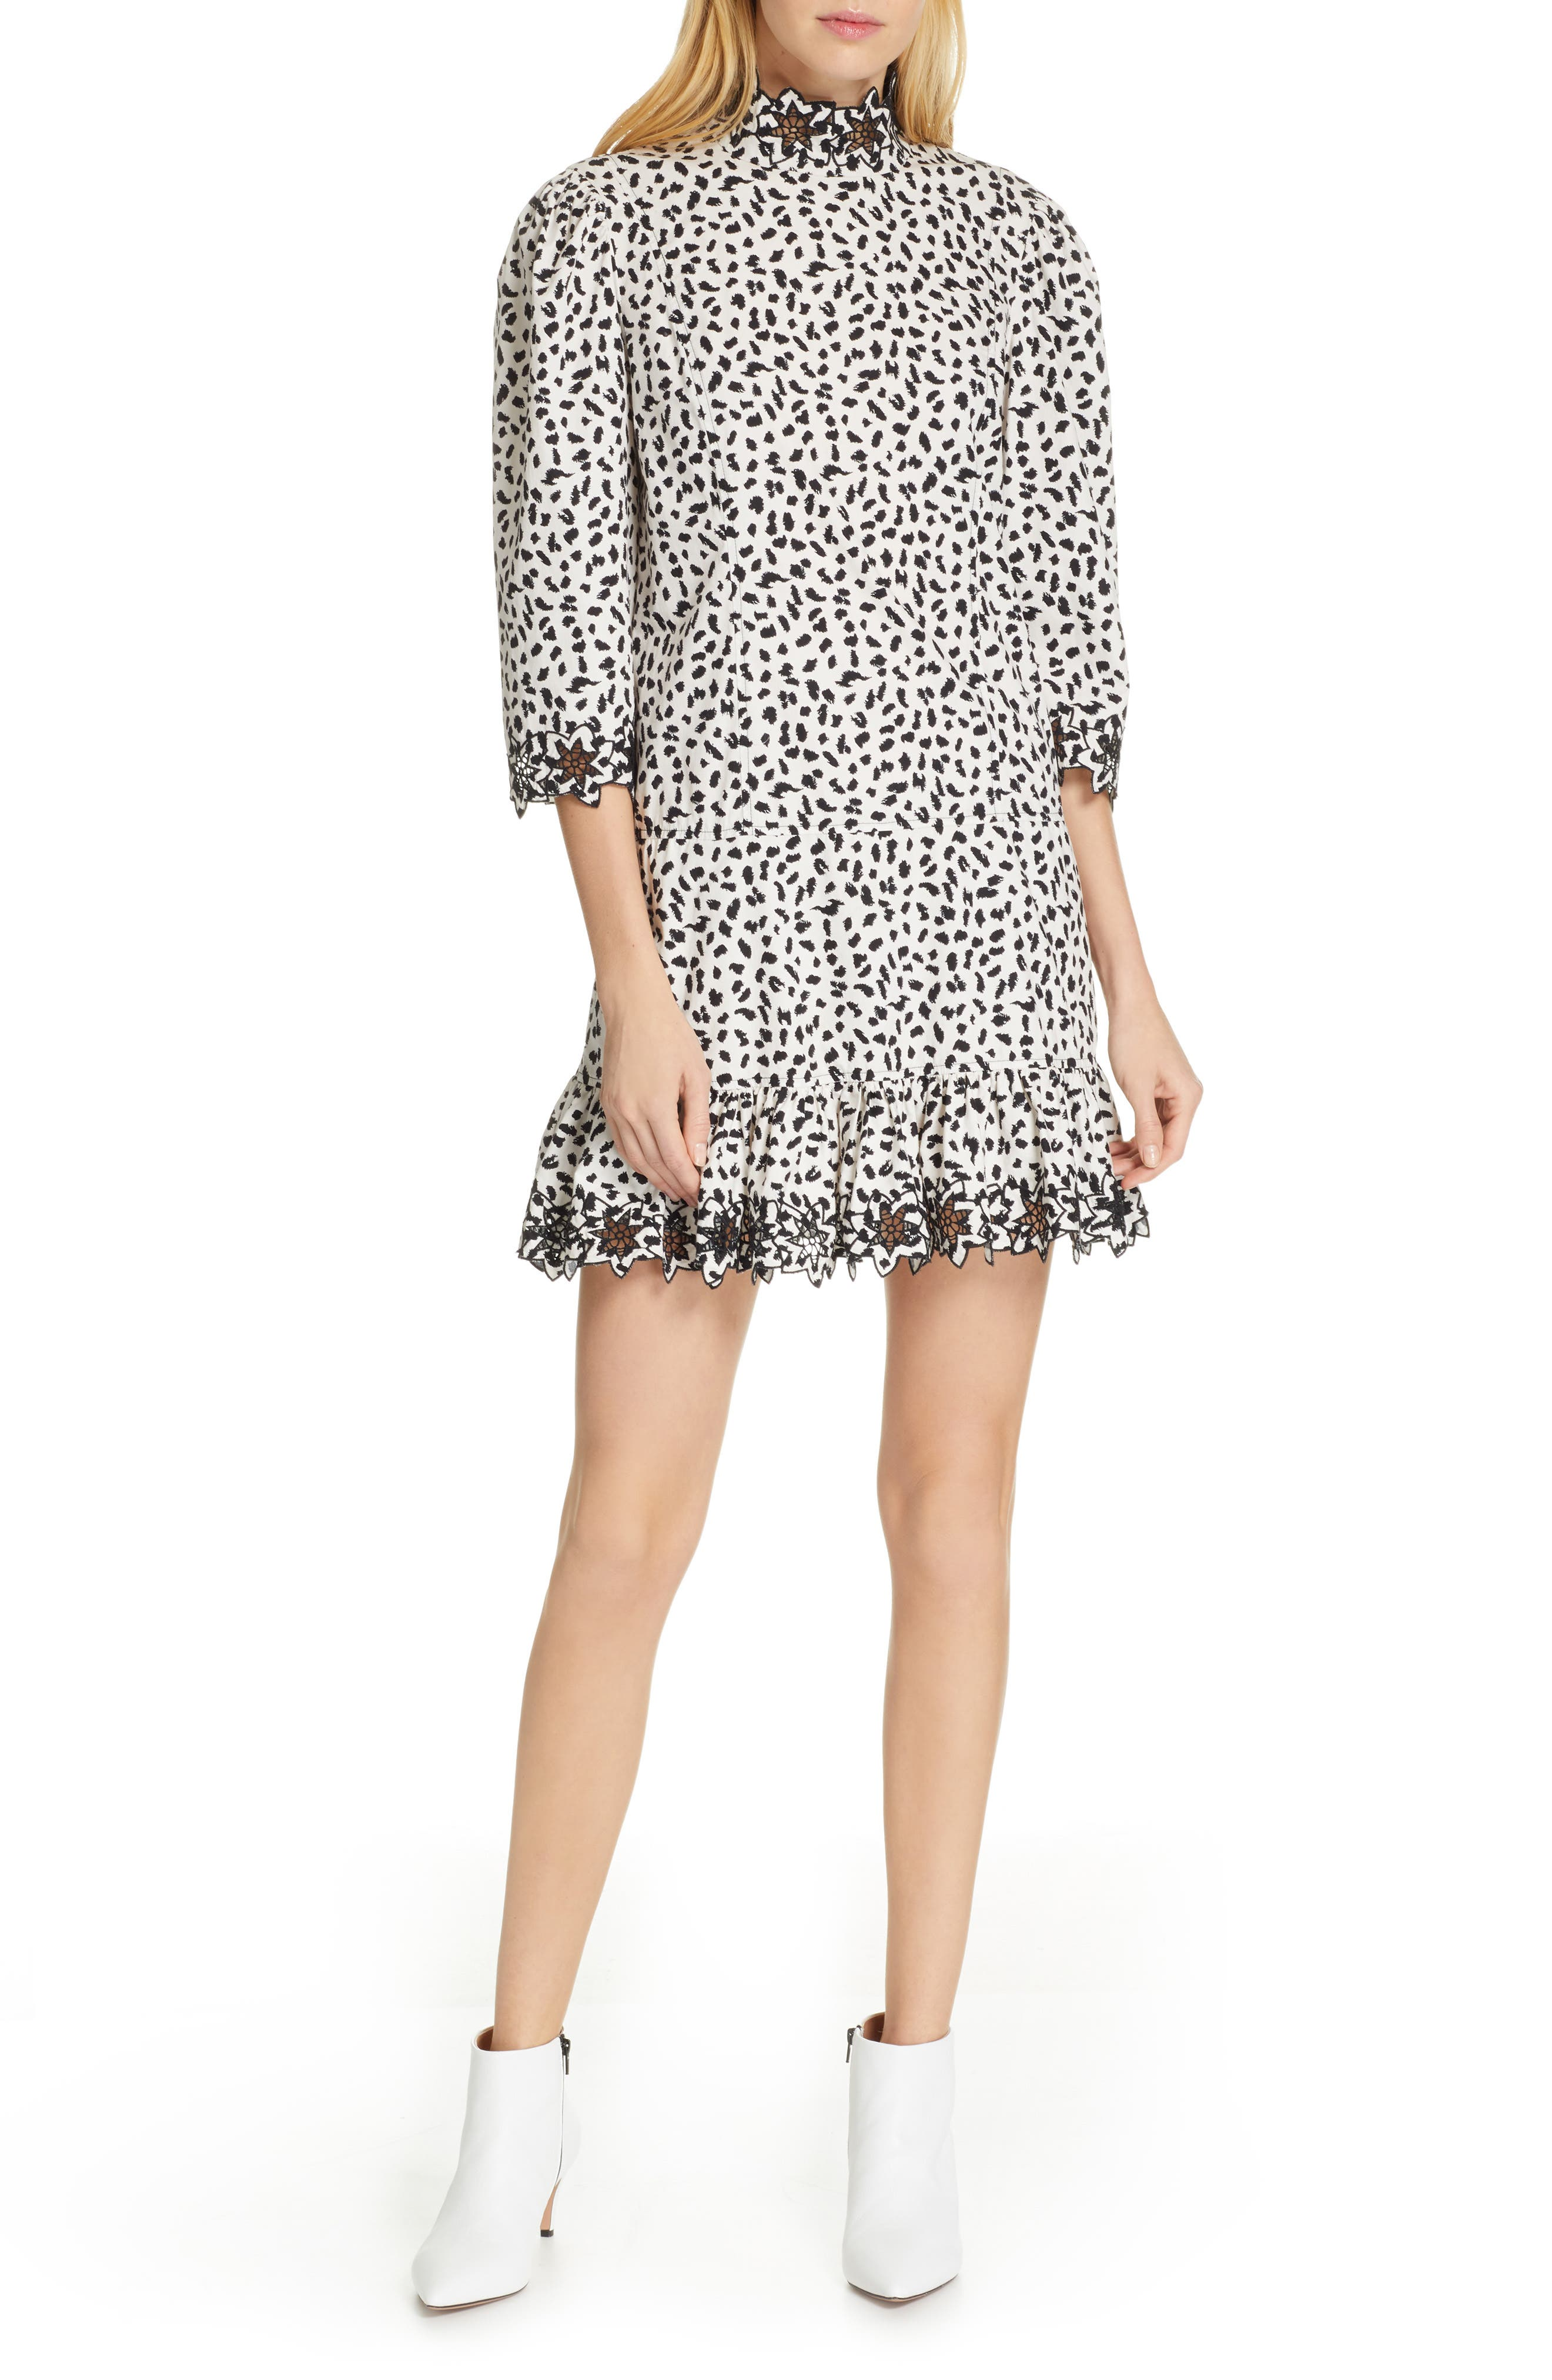 La Vie Rebecca Taylor Embellished Animal Print Dress, Beige